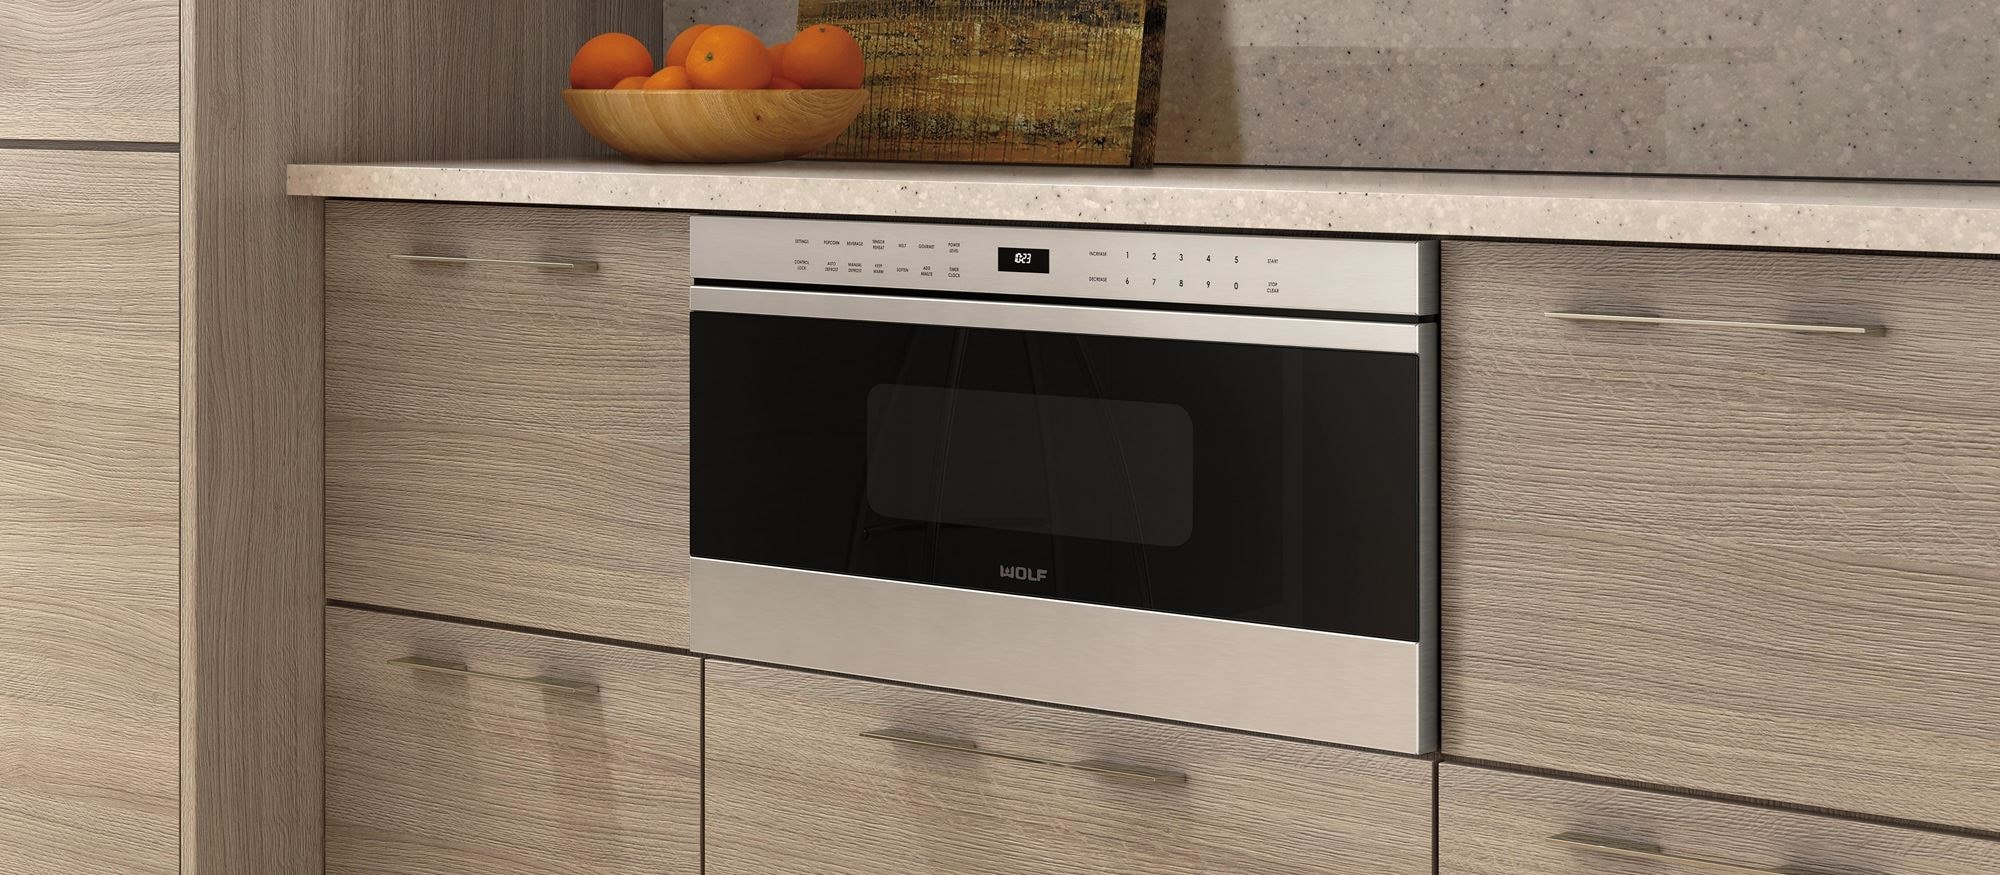 "Wolf 30"" Transitional Drawer Microwave Oven (MD30TE/S)"